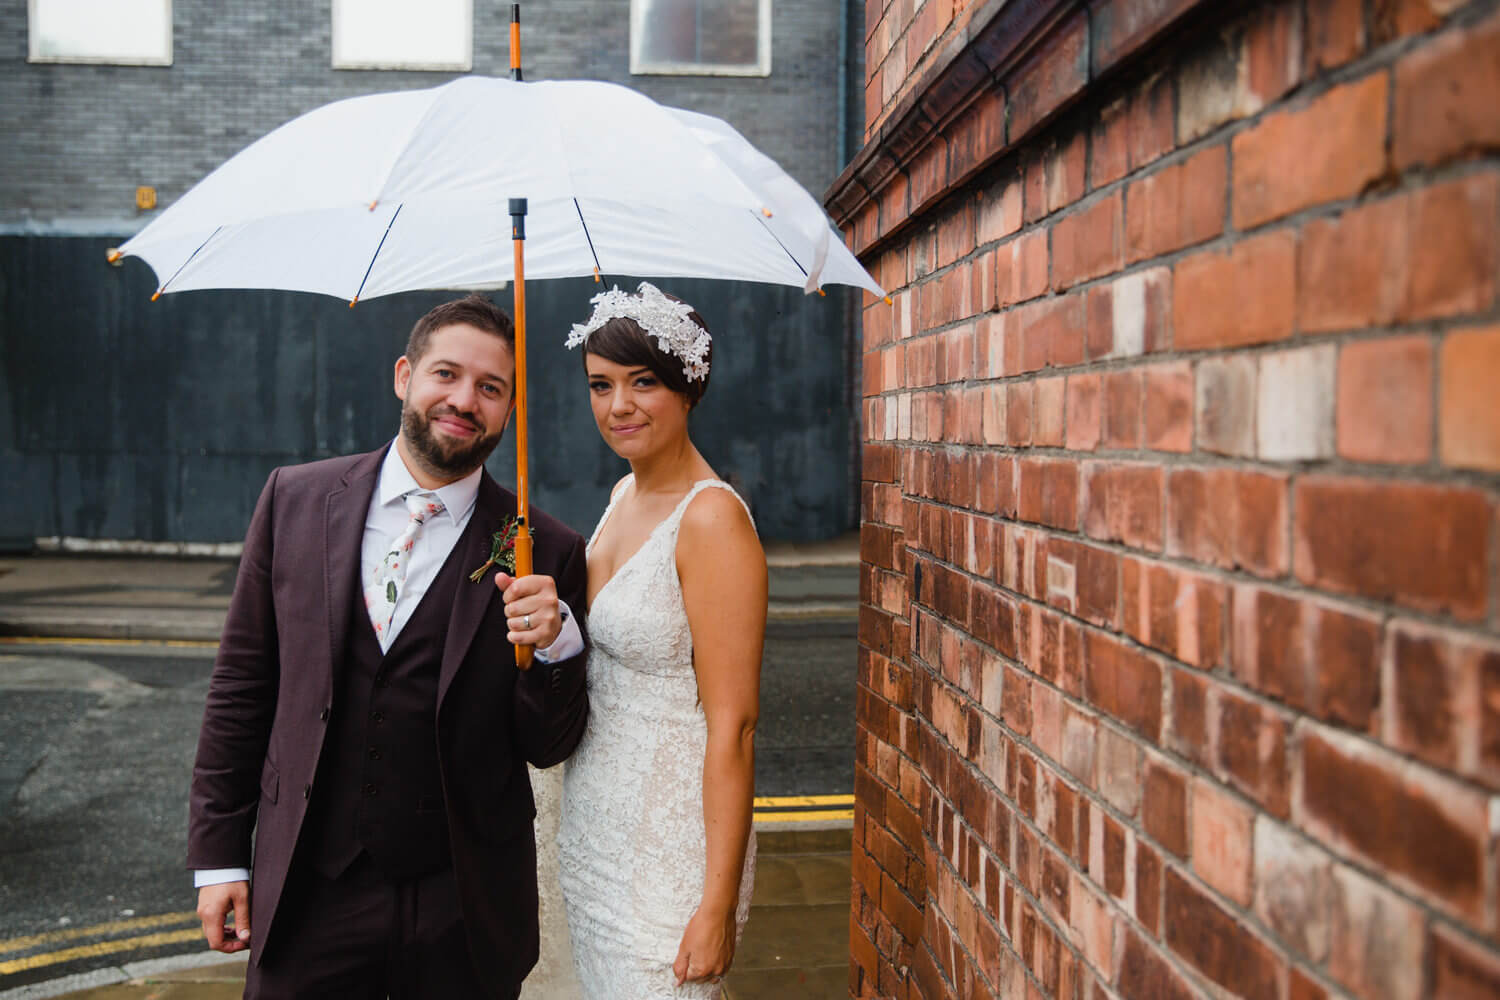 newlyweds stand on thoroughfare corner pavement for posed portrait